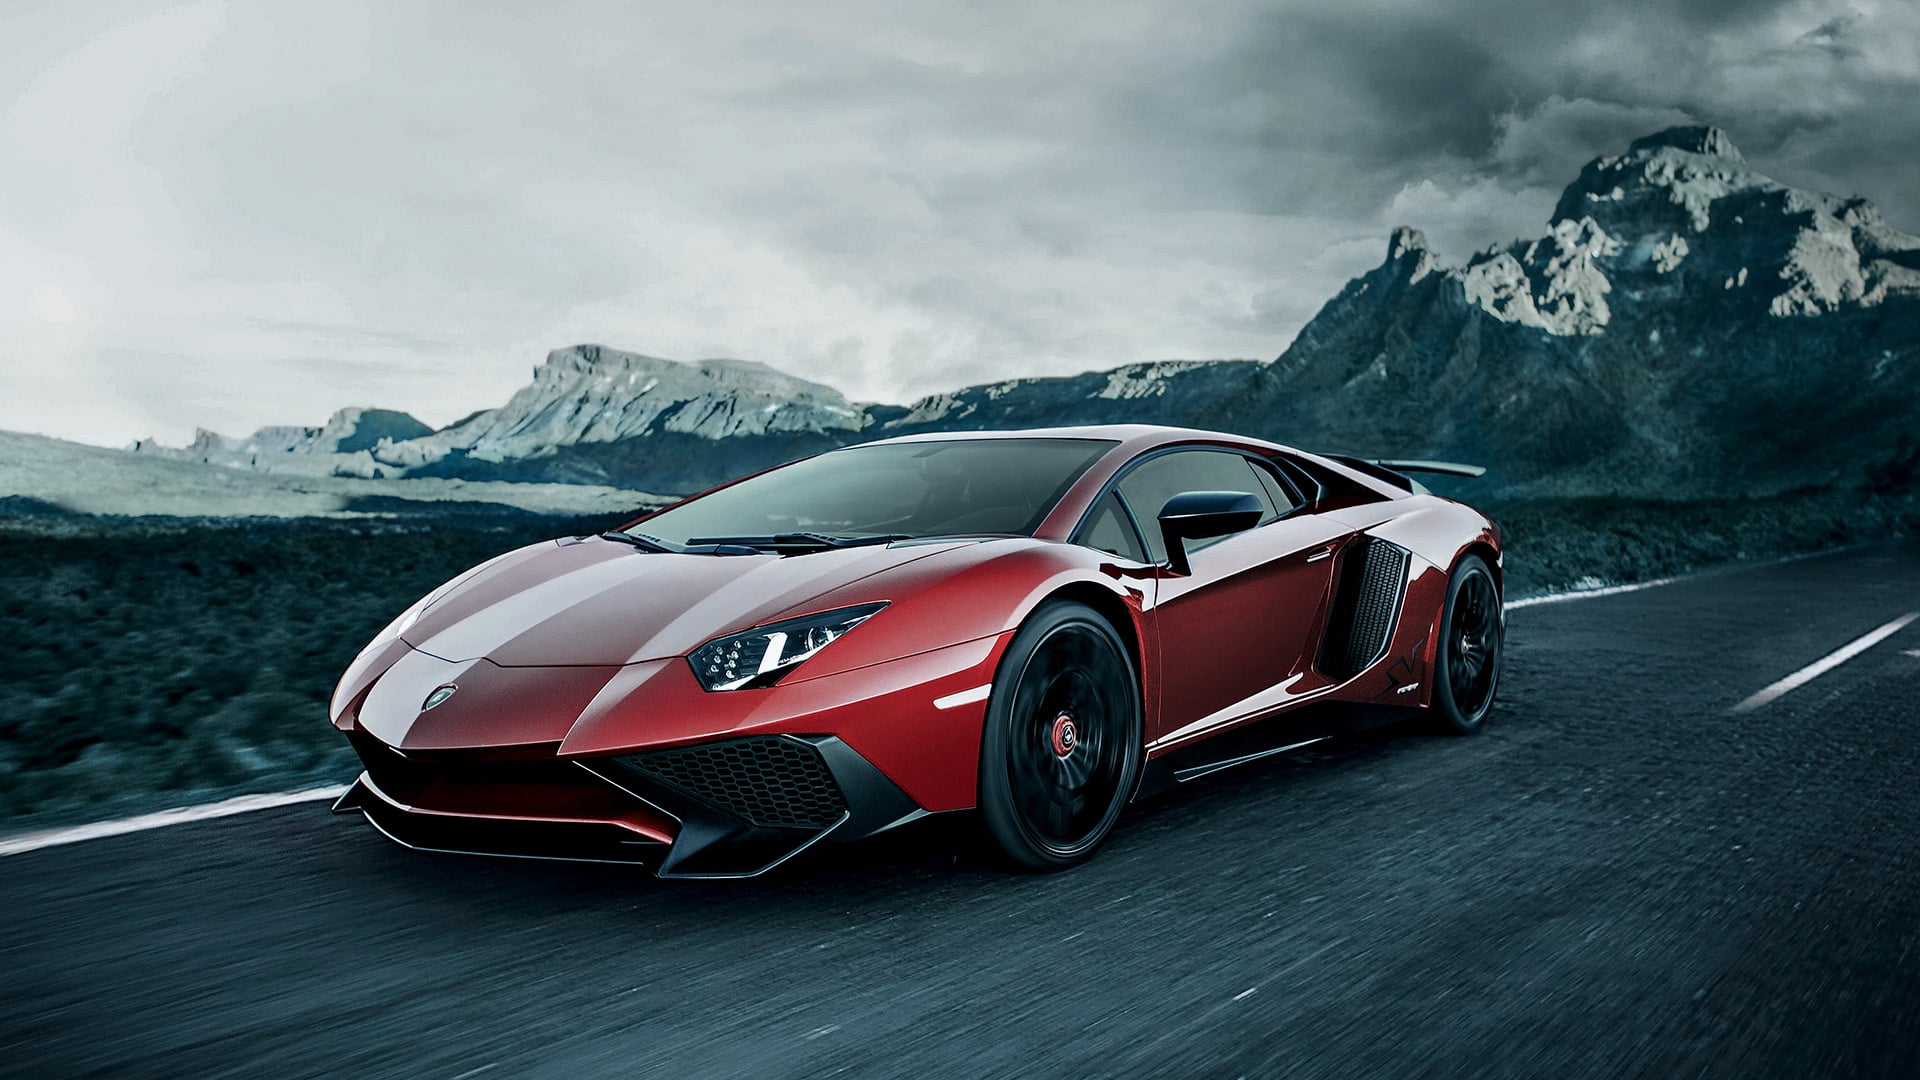 Lamborghini Aventador Superveloce Coupe Pictures Videos